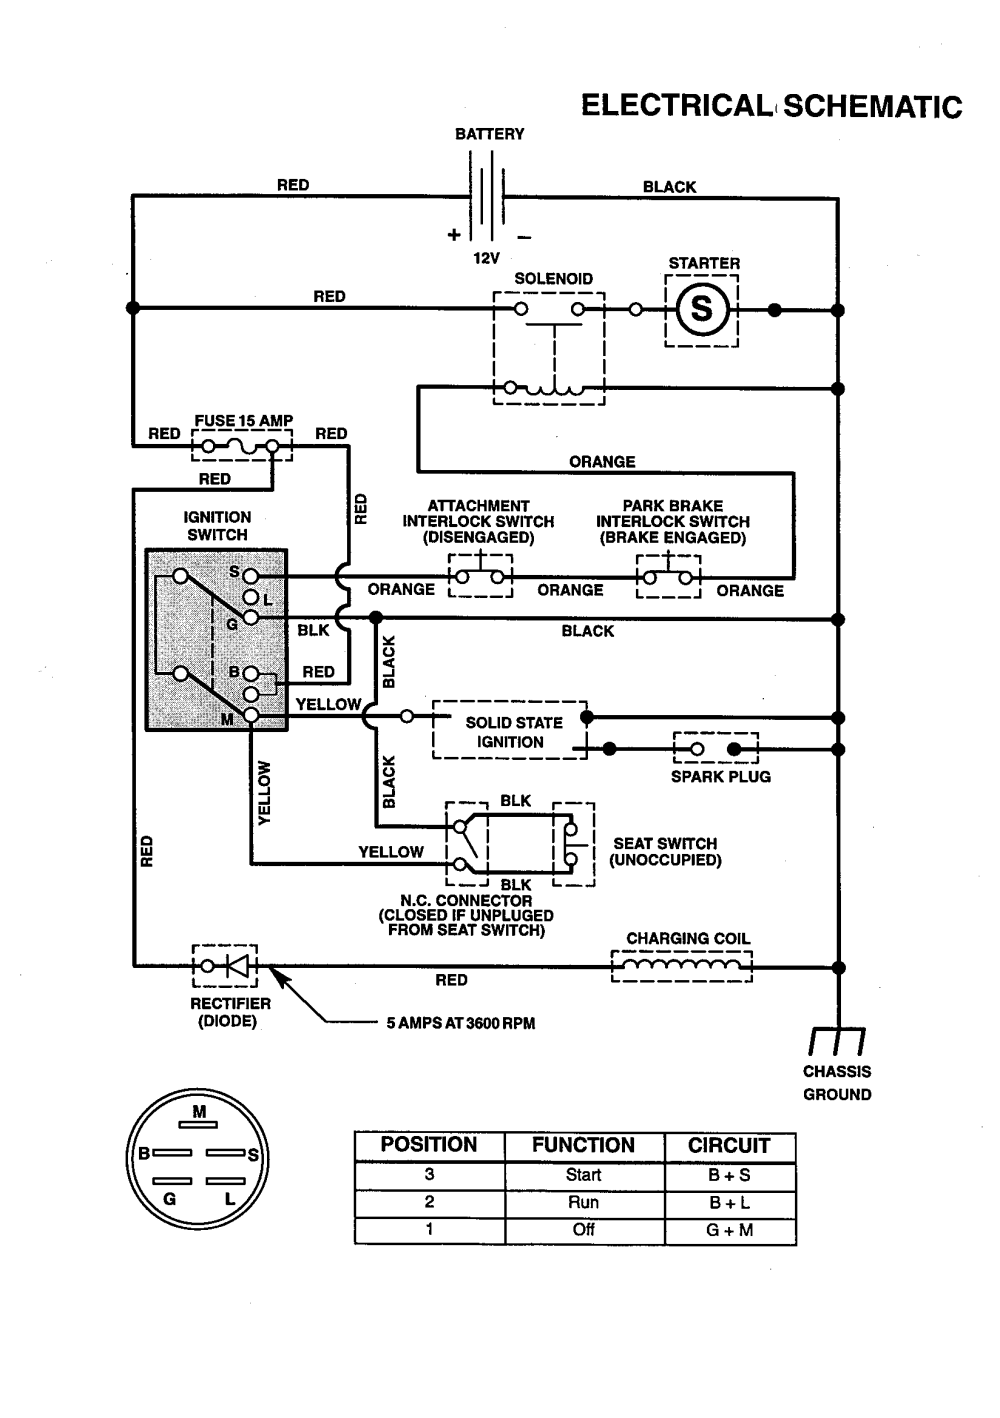 medium resolution of craftsman 536270211 electrical schematic diagram